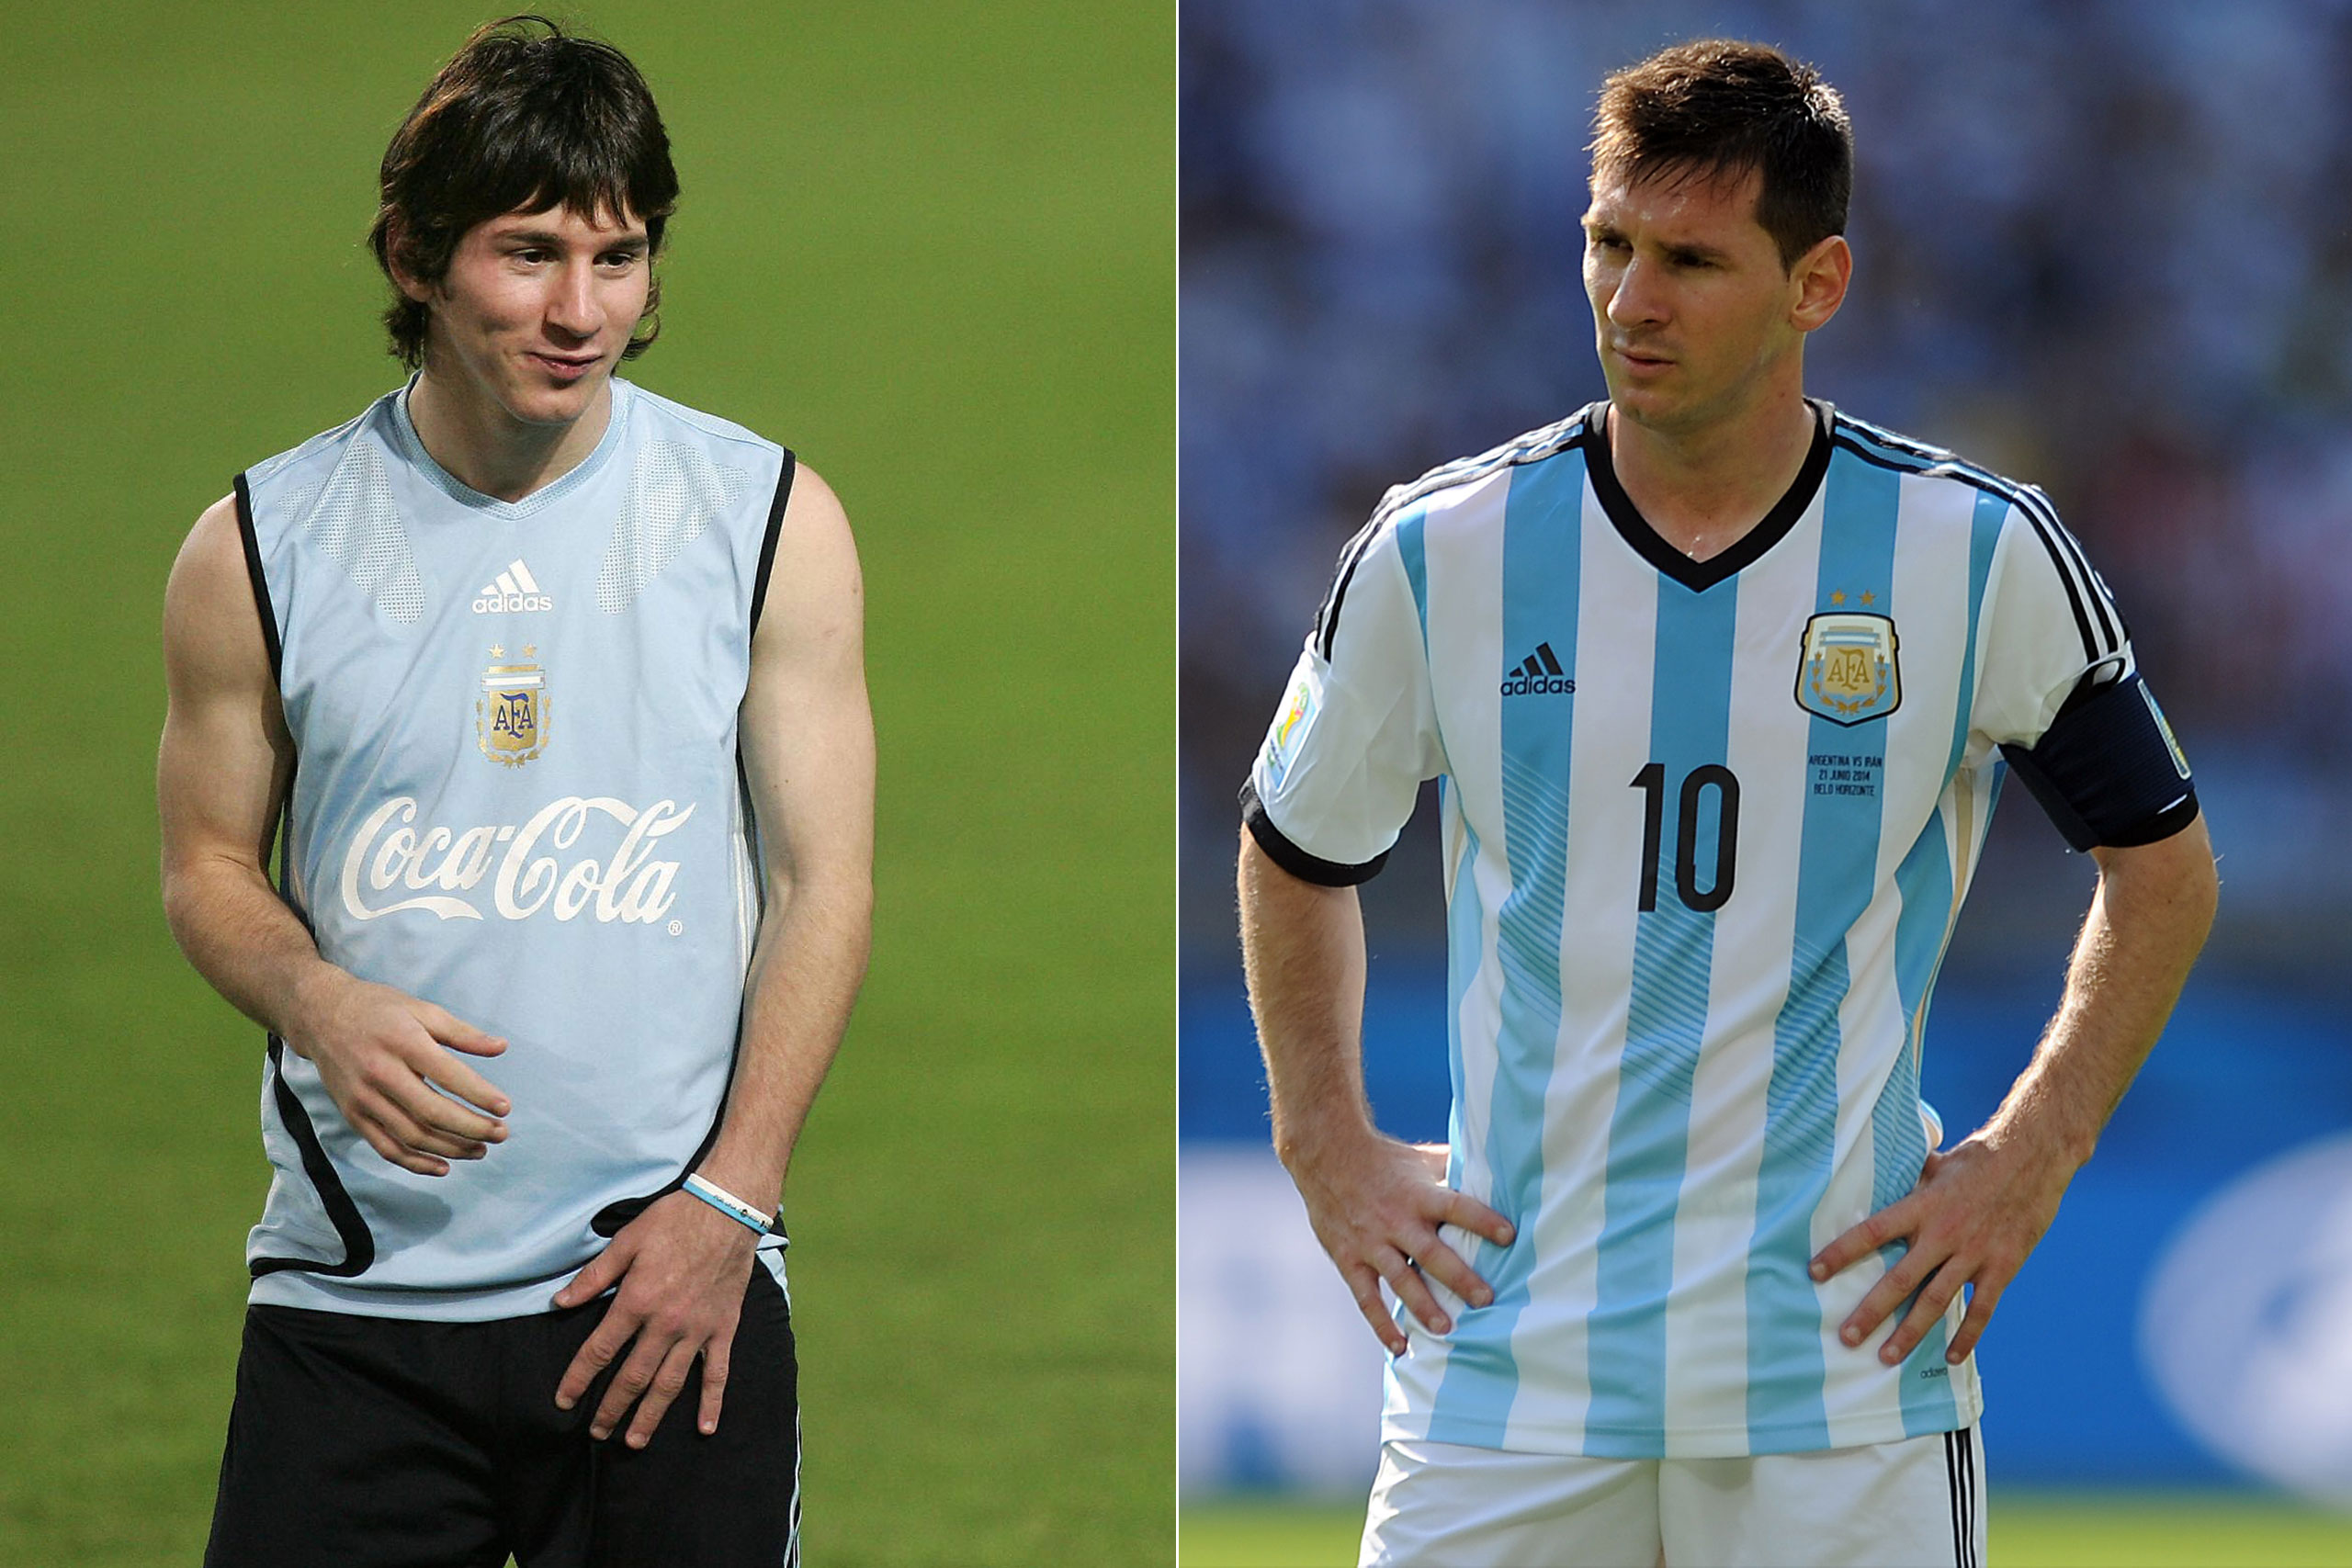 Left: Lionel Messi in 2005; Right: Lionel Messi playing for Argentina at the FIFA World Cup in Brazil, 2014.